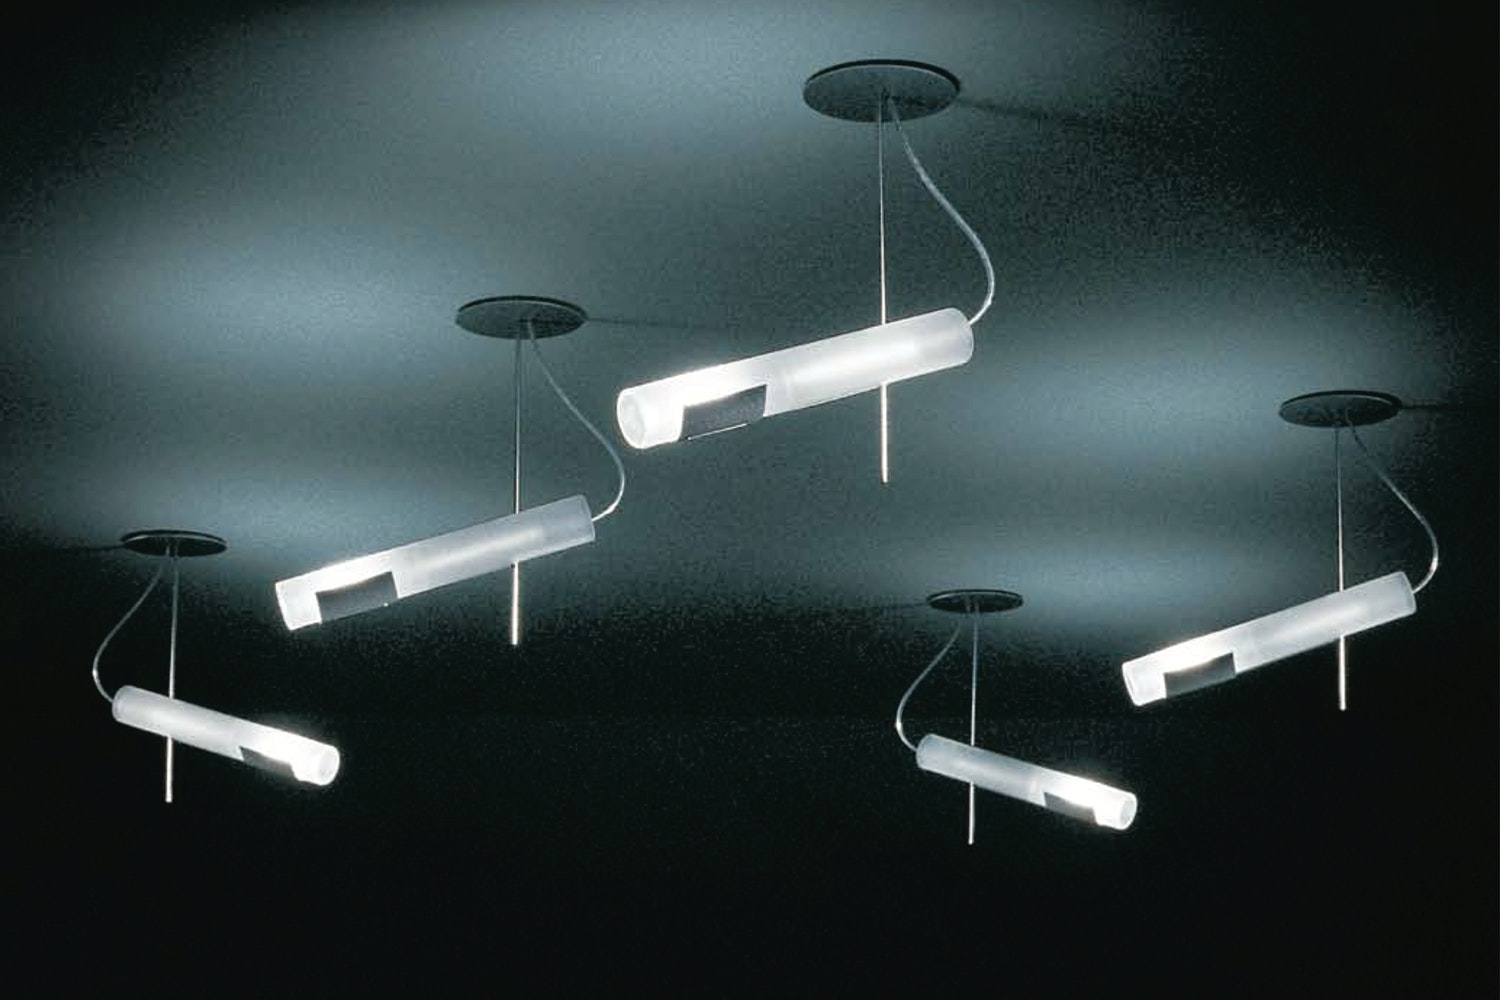 Zuuk Ceiling/Wall Lamp by Ingo Maurer for Ingo Maurer